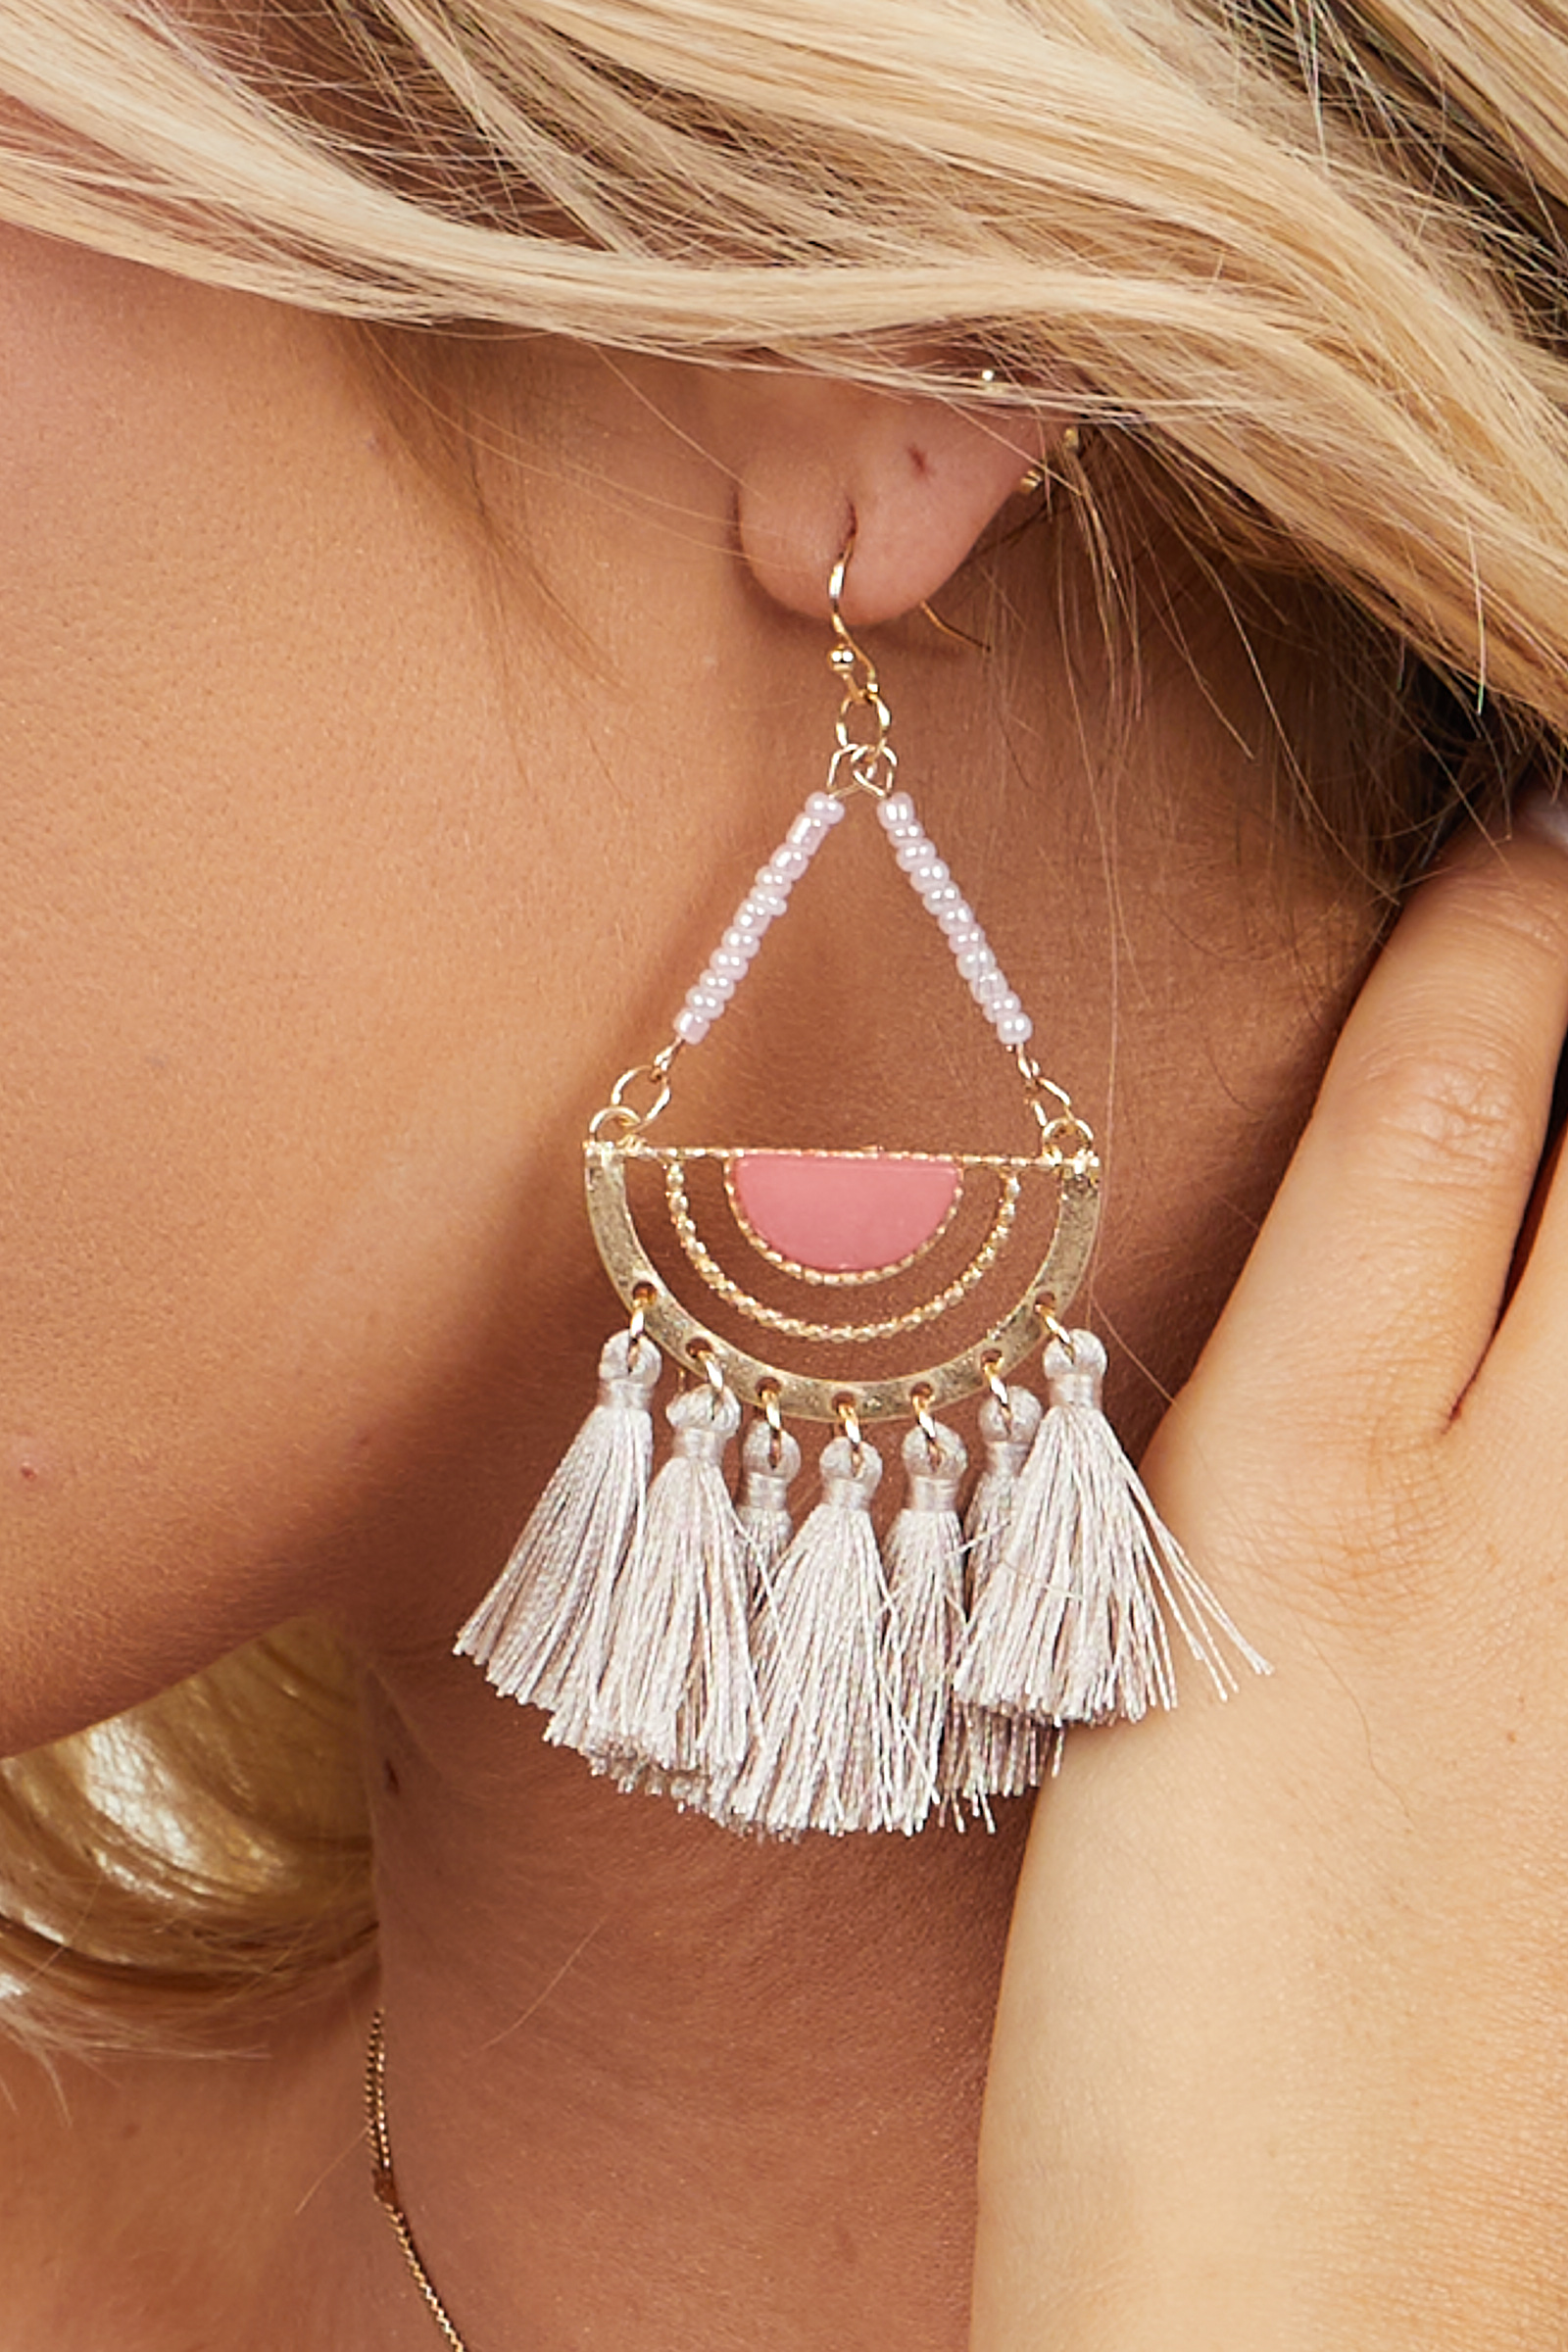 Pink and Mauve Half Circle Earrings with Tassel Details